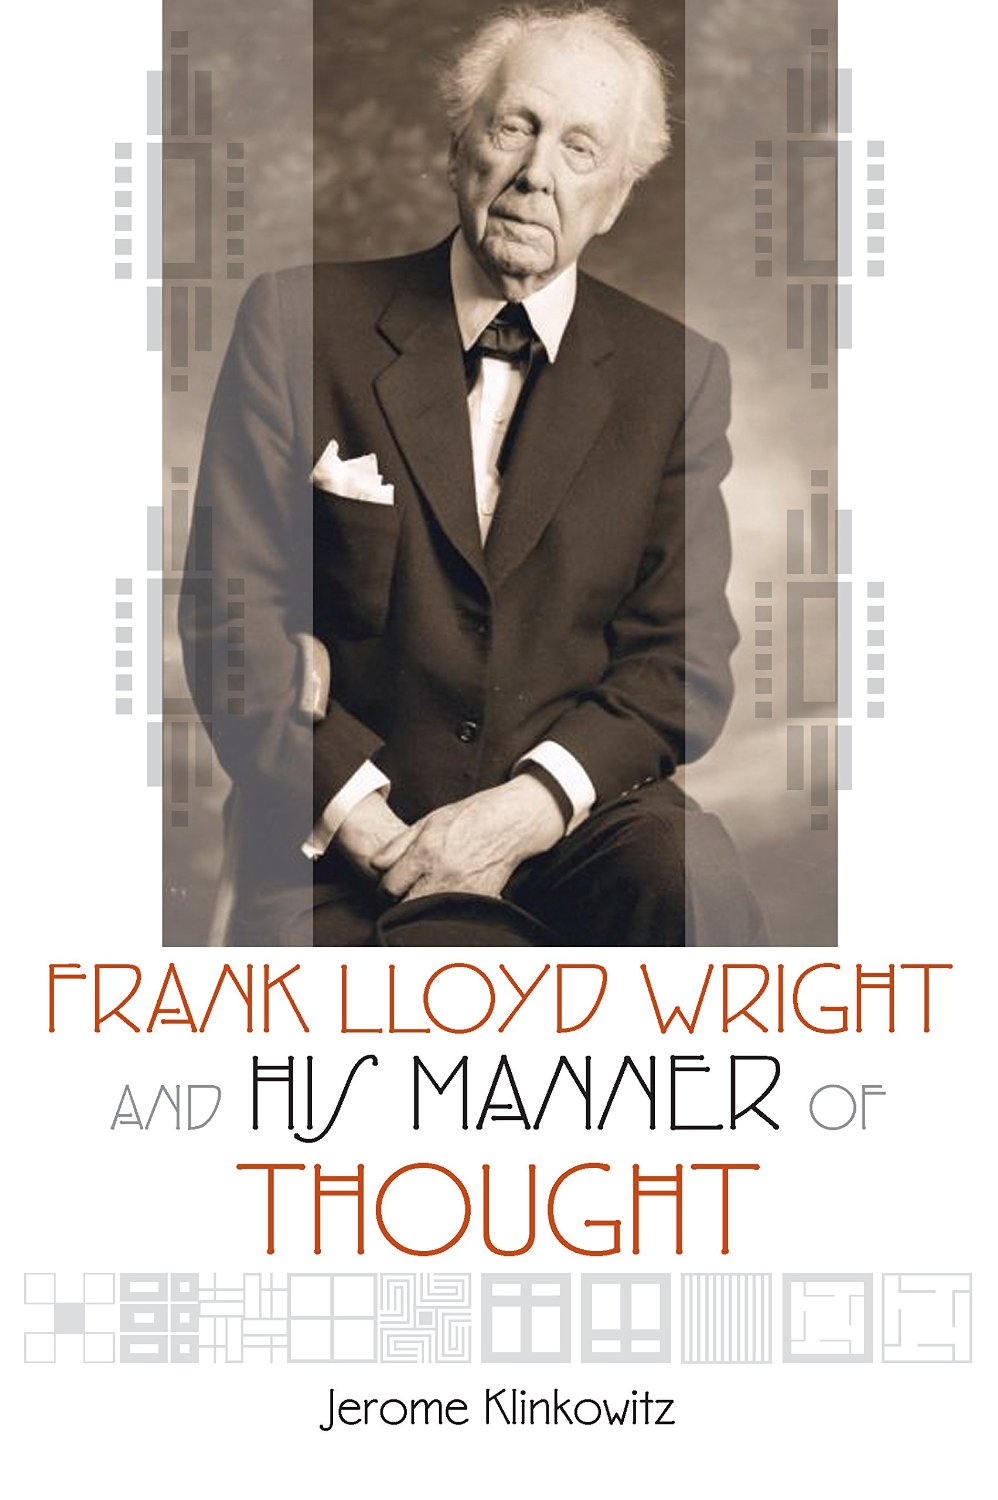 new book on frank lloyd wright goes beyond architecture wuwm. Black Bedroom Furniture Sets. Home Design Ideas